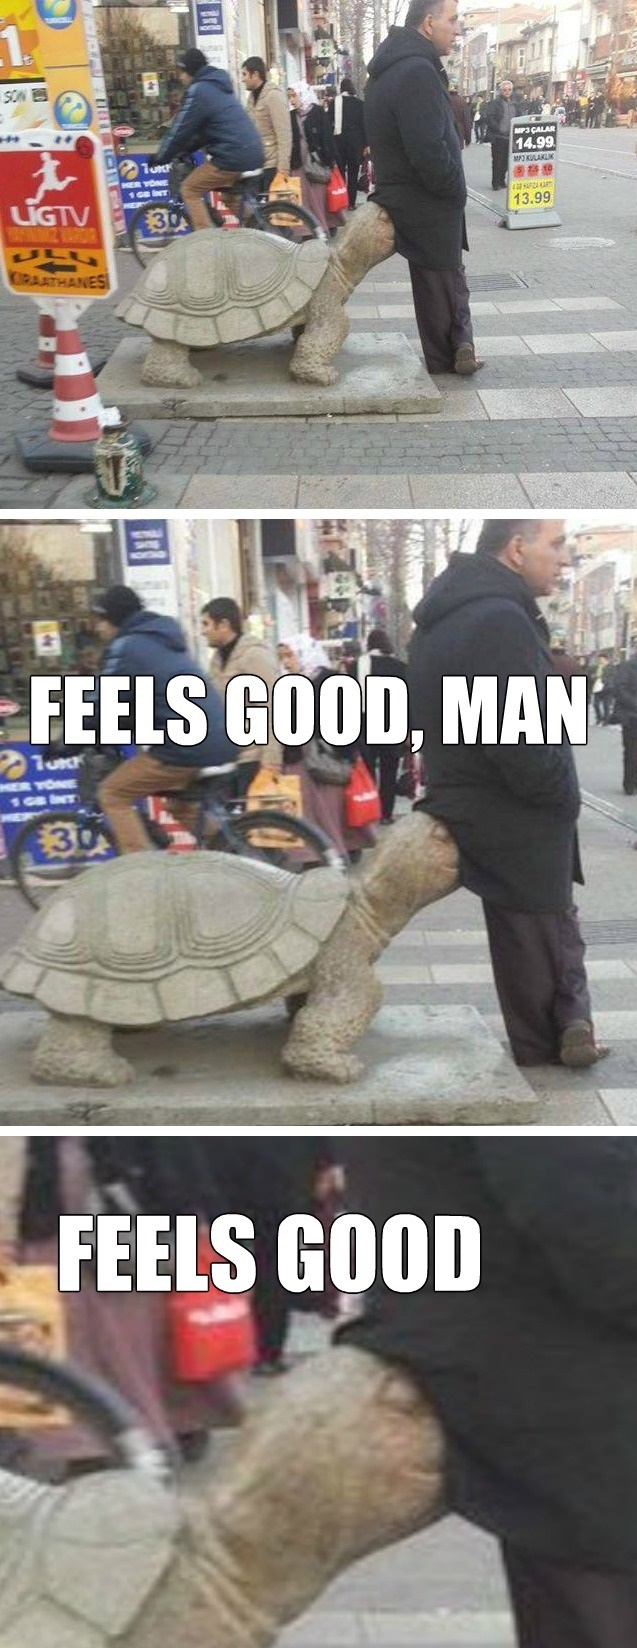 funny-picture-feels-good